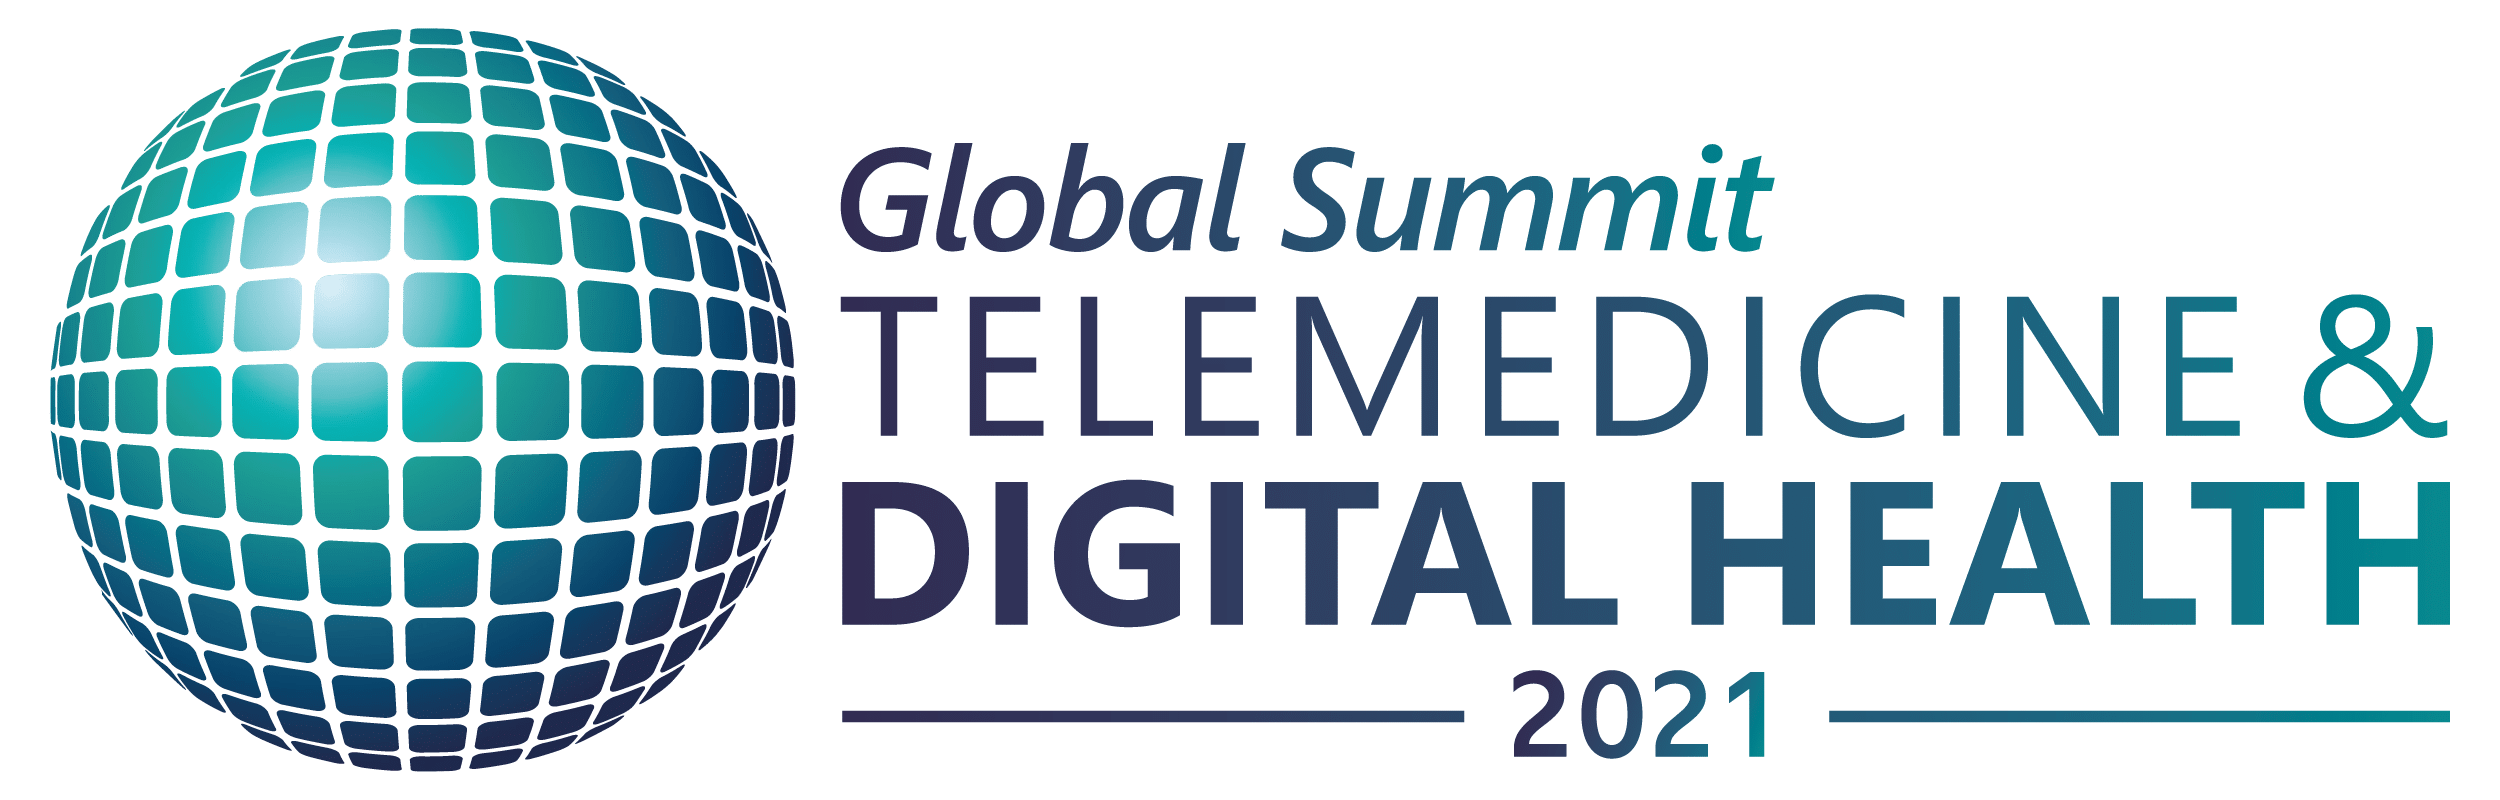 Global Summit 2020 | Telemedicine & Digital Health